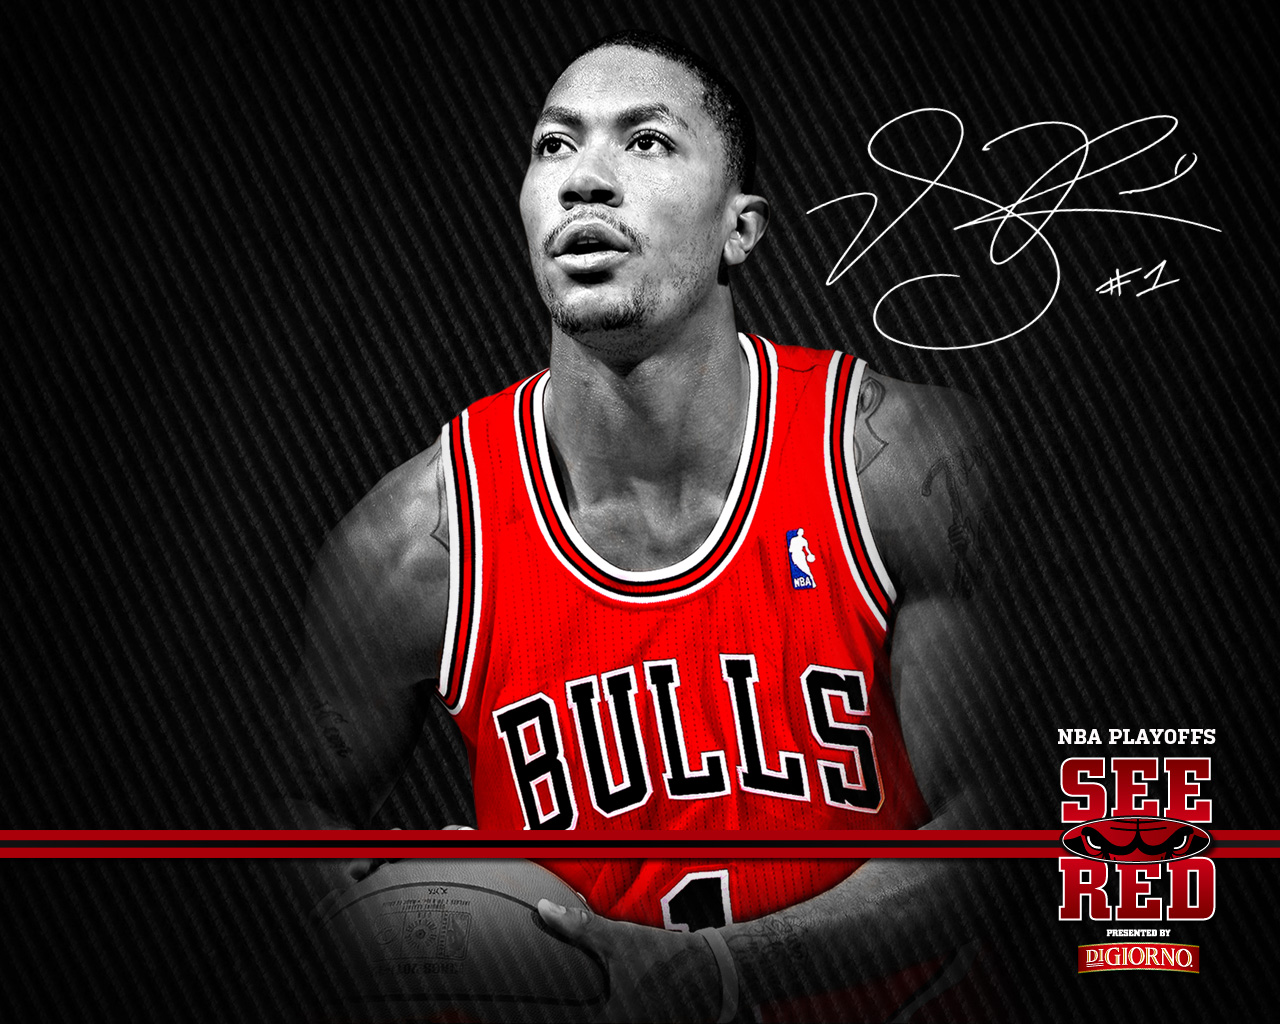 2012 Playoffs See Red Wallpaper Chicago Bulls 1280x1024